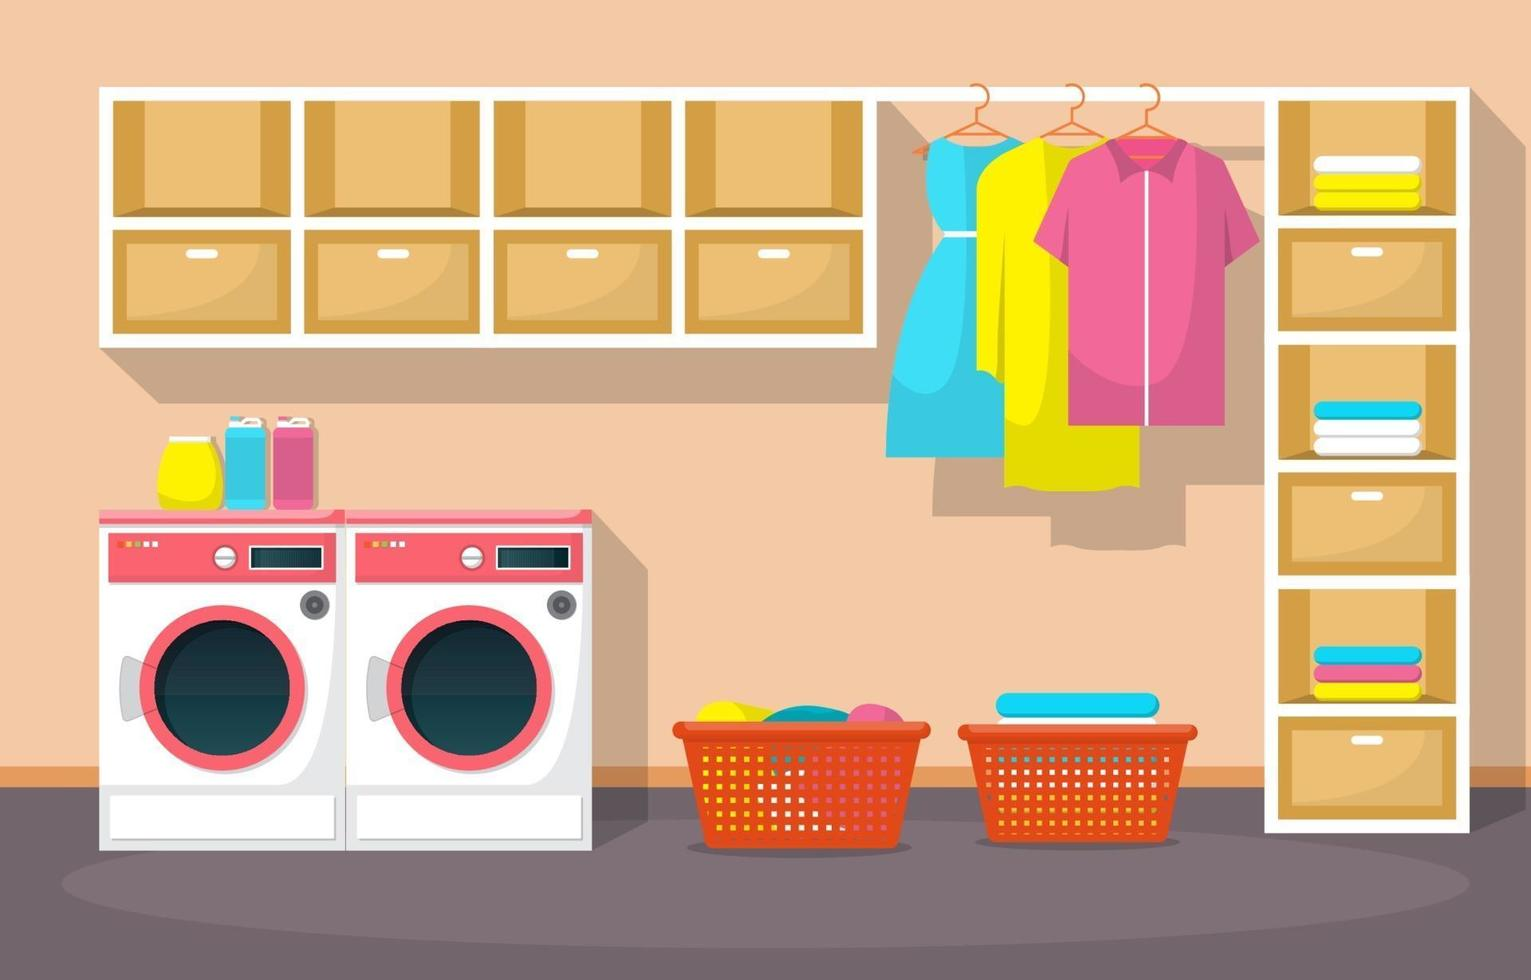 Laundromat with Washing Machines and Shelves vector